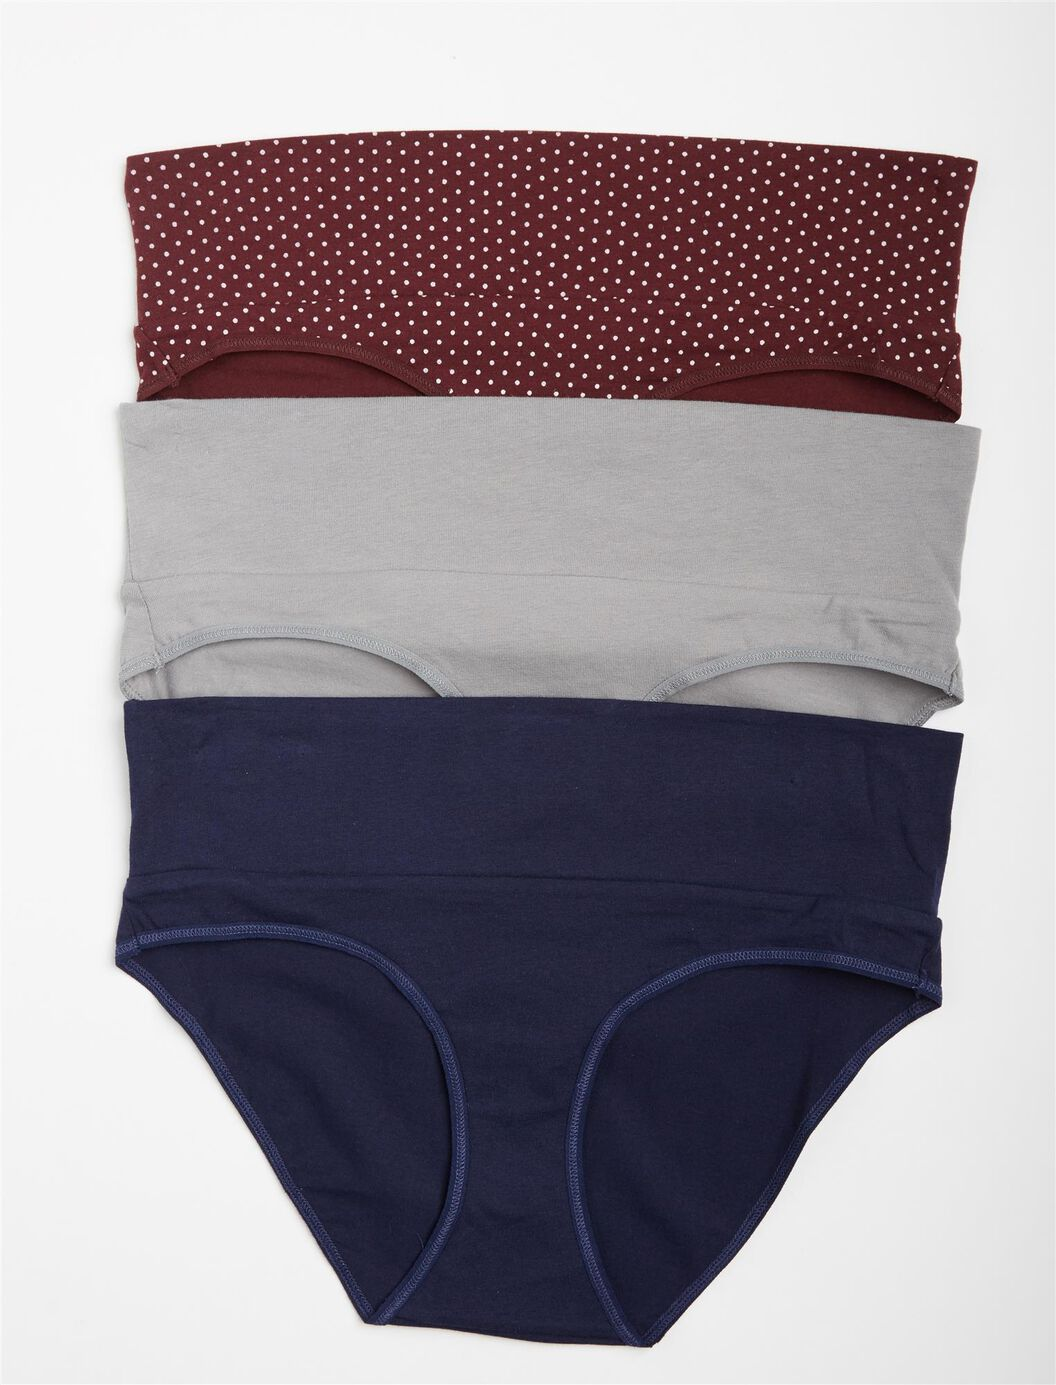 Maternity Fold Over Panties (3 Pack) at Motherhood Maternity in Victor, NY | Tuggl